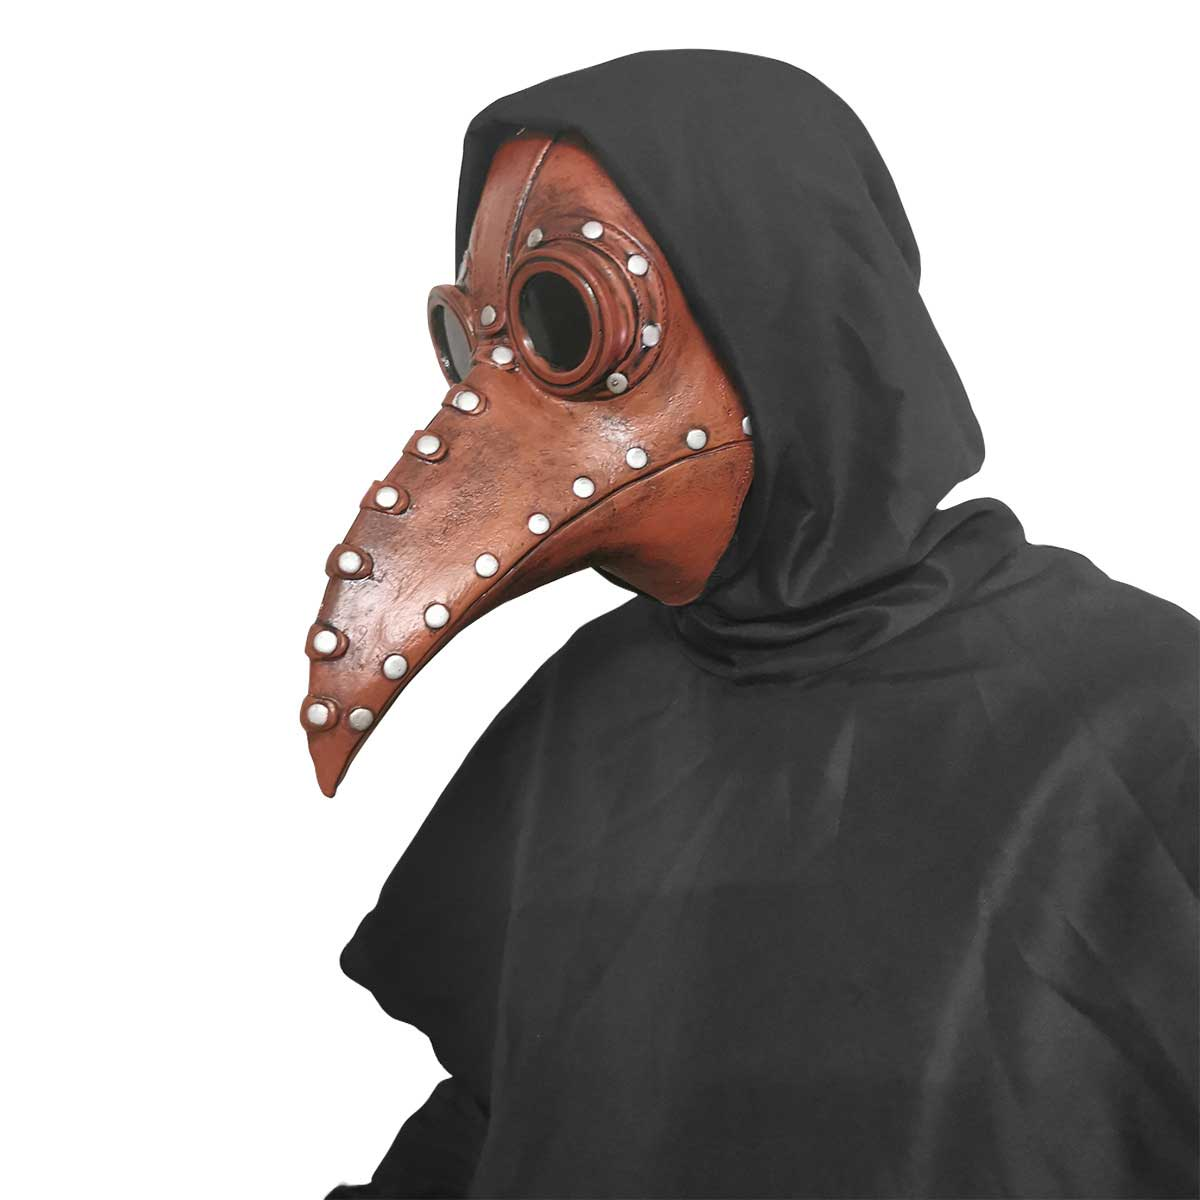 Scary Raven Gothic Plague Doctor Halloween Cosplay Face ...